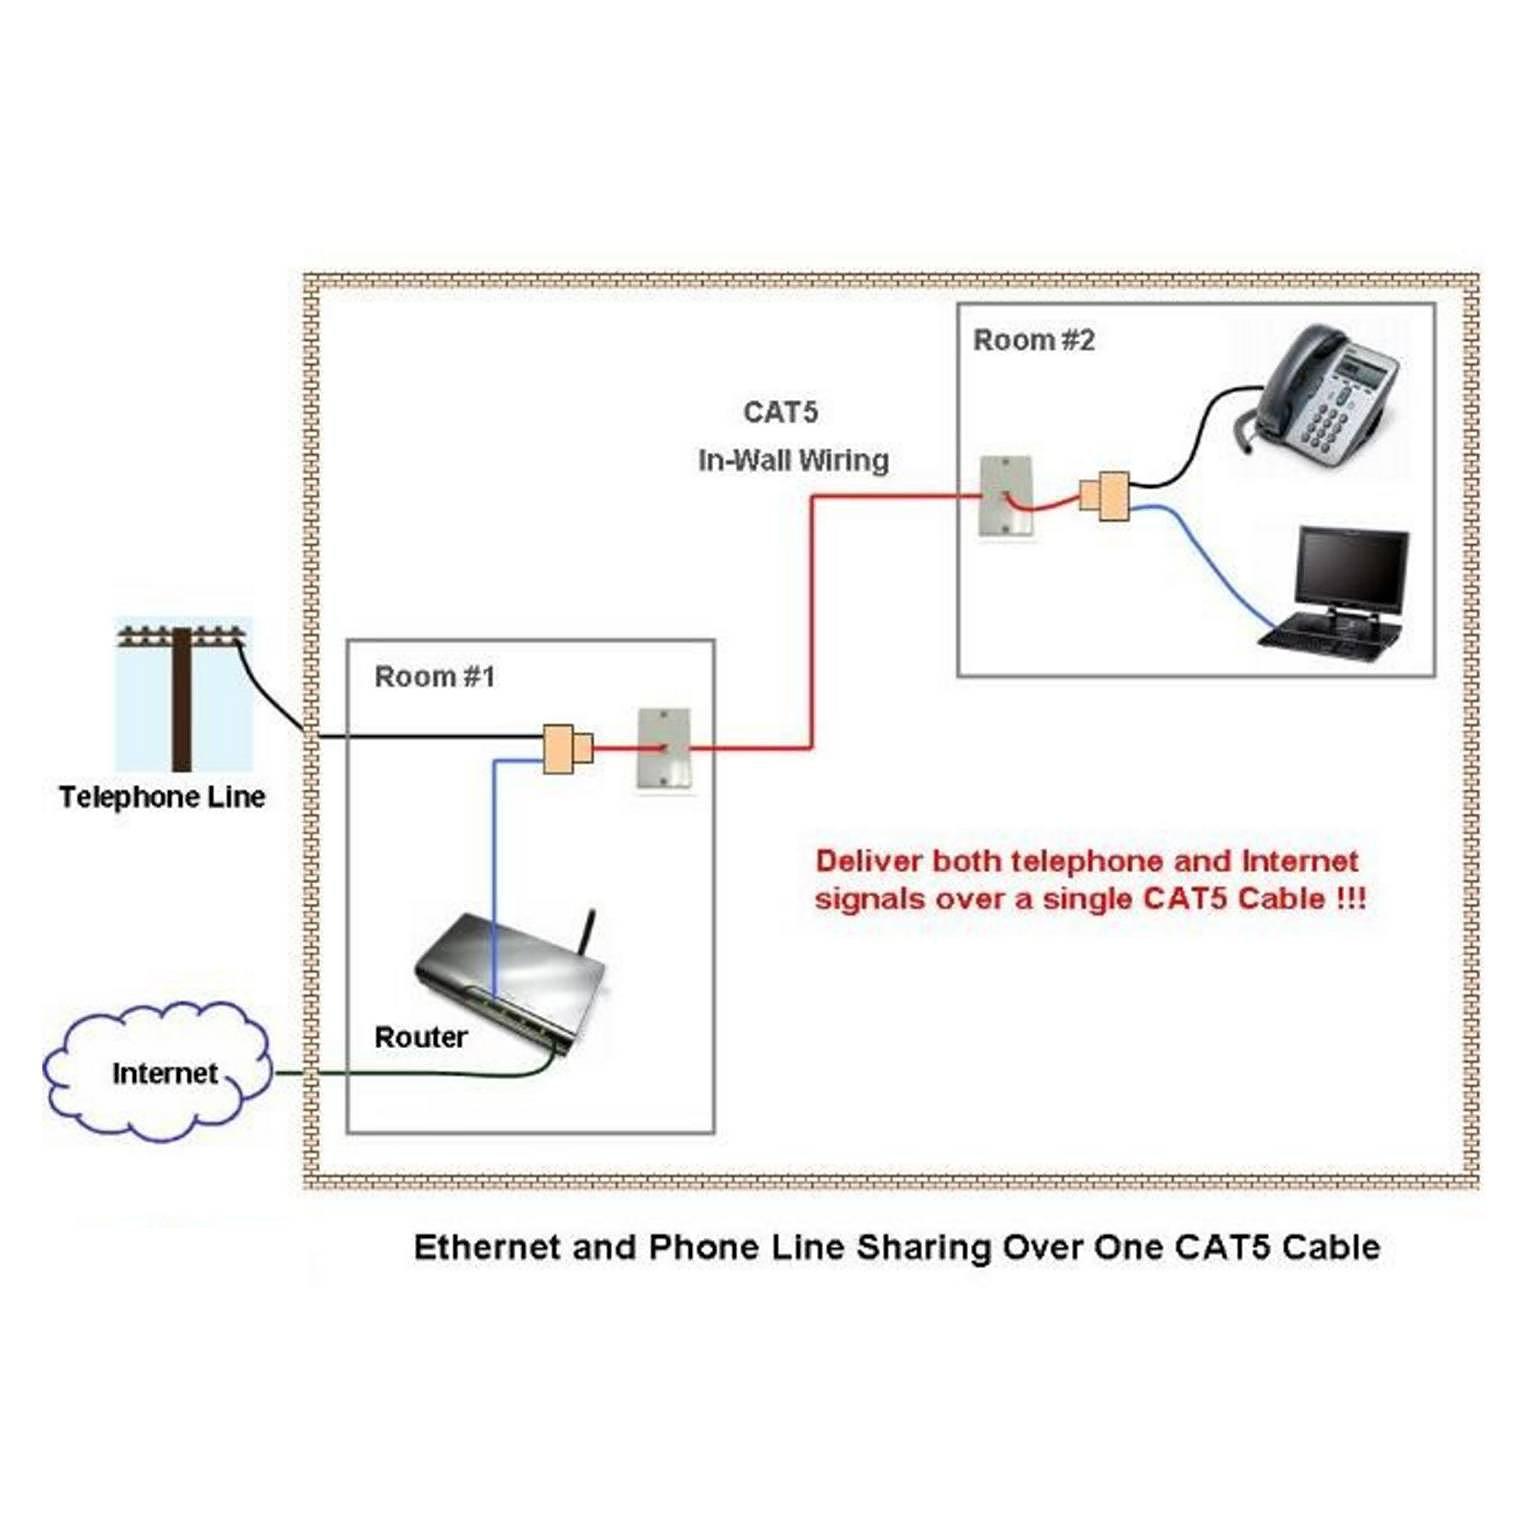 hight resolution of 1536x1536 splitter cable sharing kit for ethernet and phone lines ethernet drawing